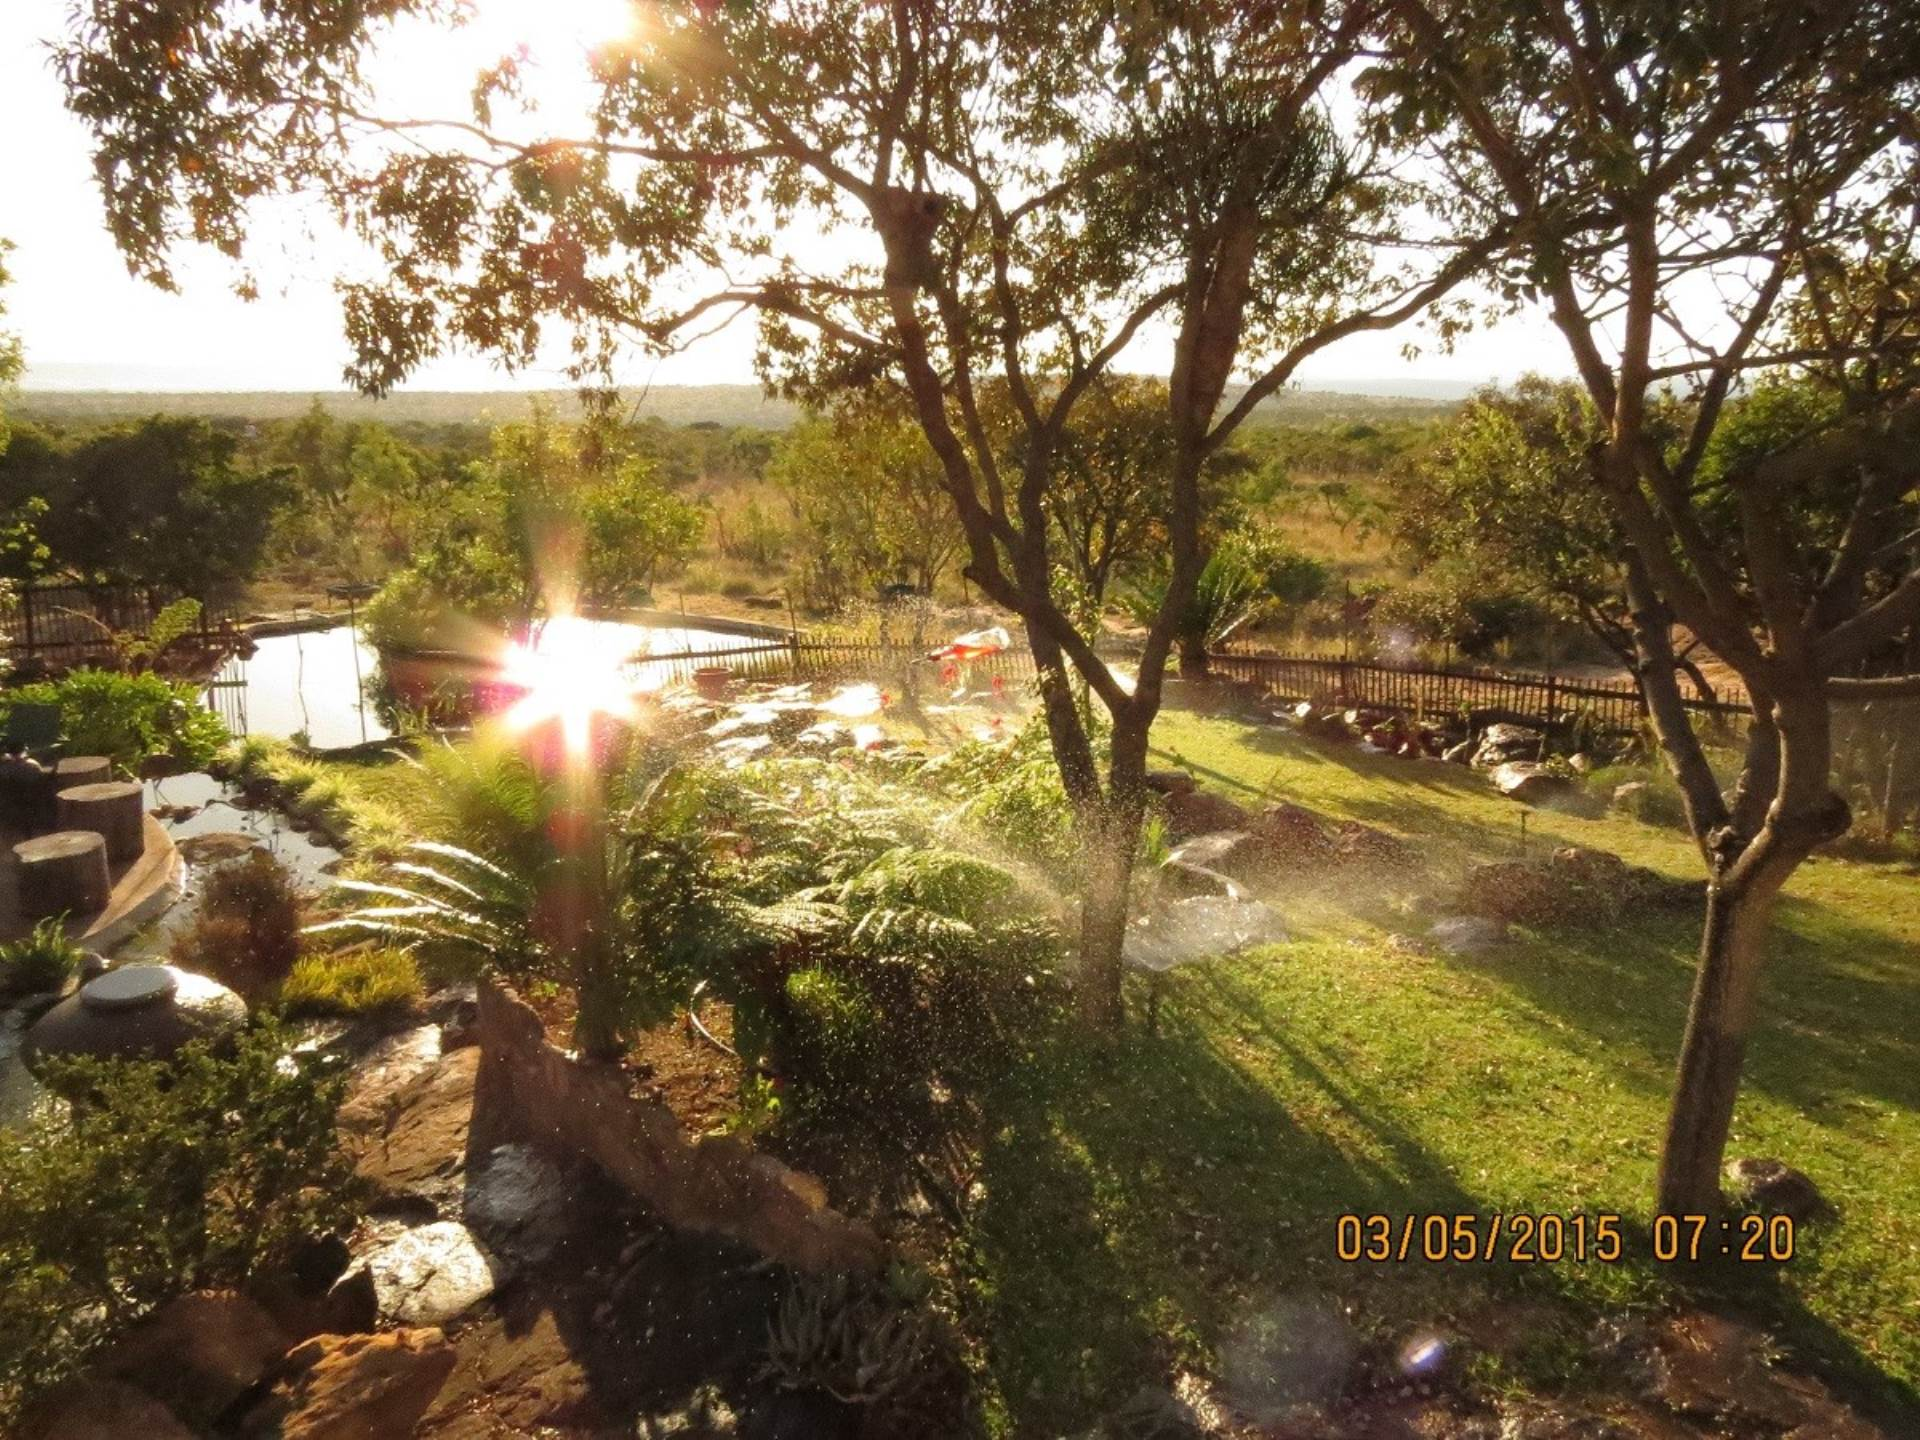 3 BedroomFarm For Sale In Vaalwater